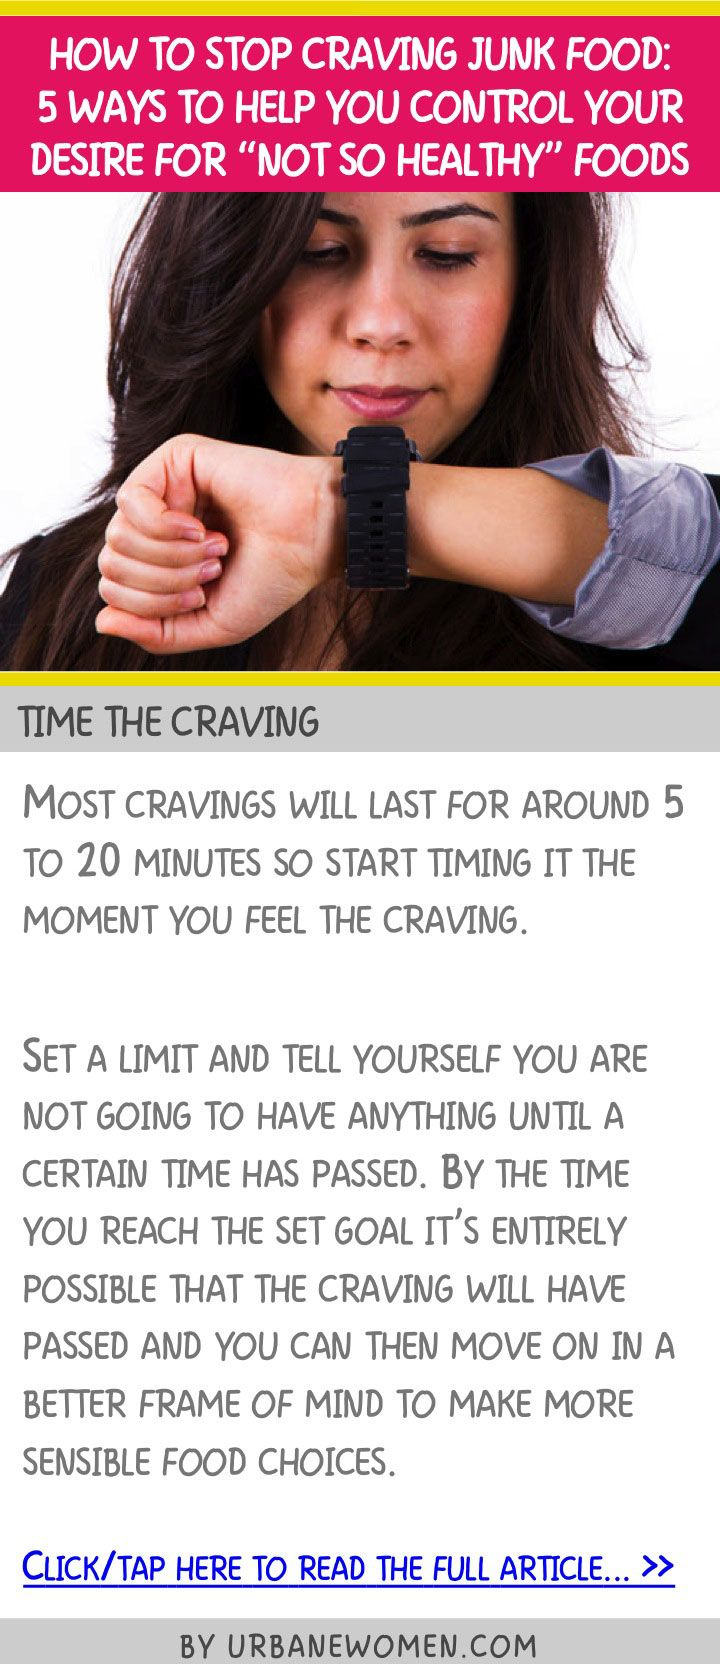 """How to stop craving junk food: 5 ways to help you control your desire for """"not so healthy"""" foods - Time the craving"""